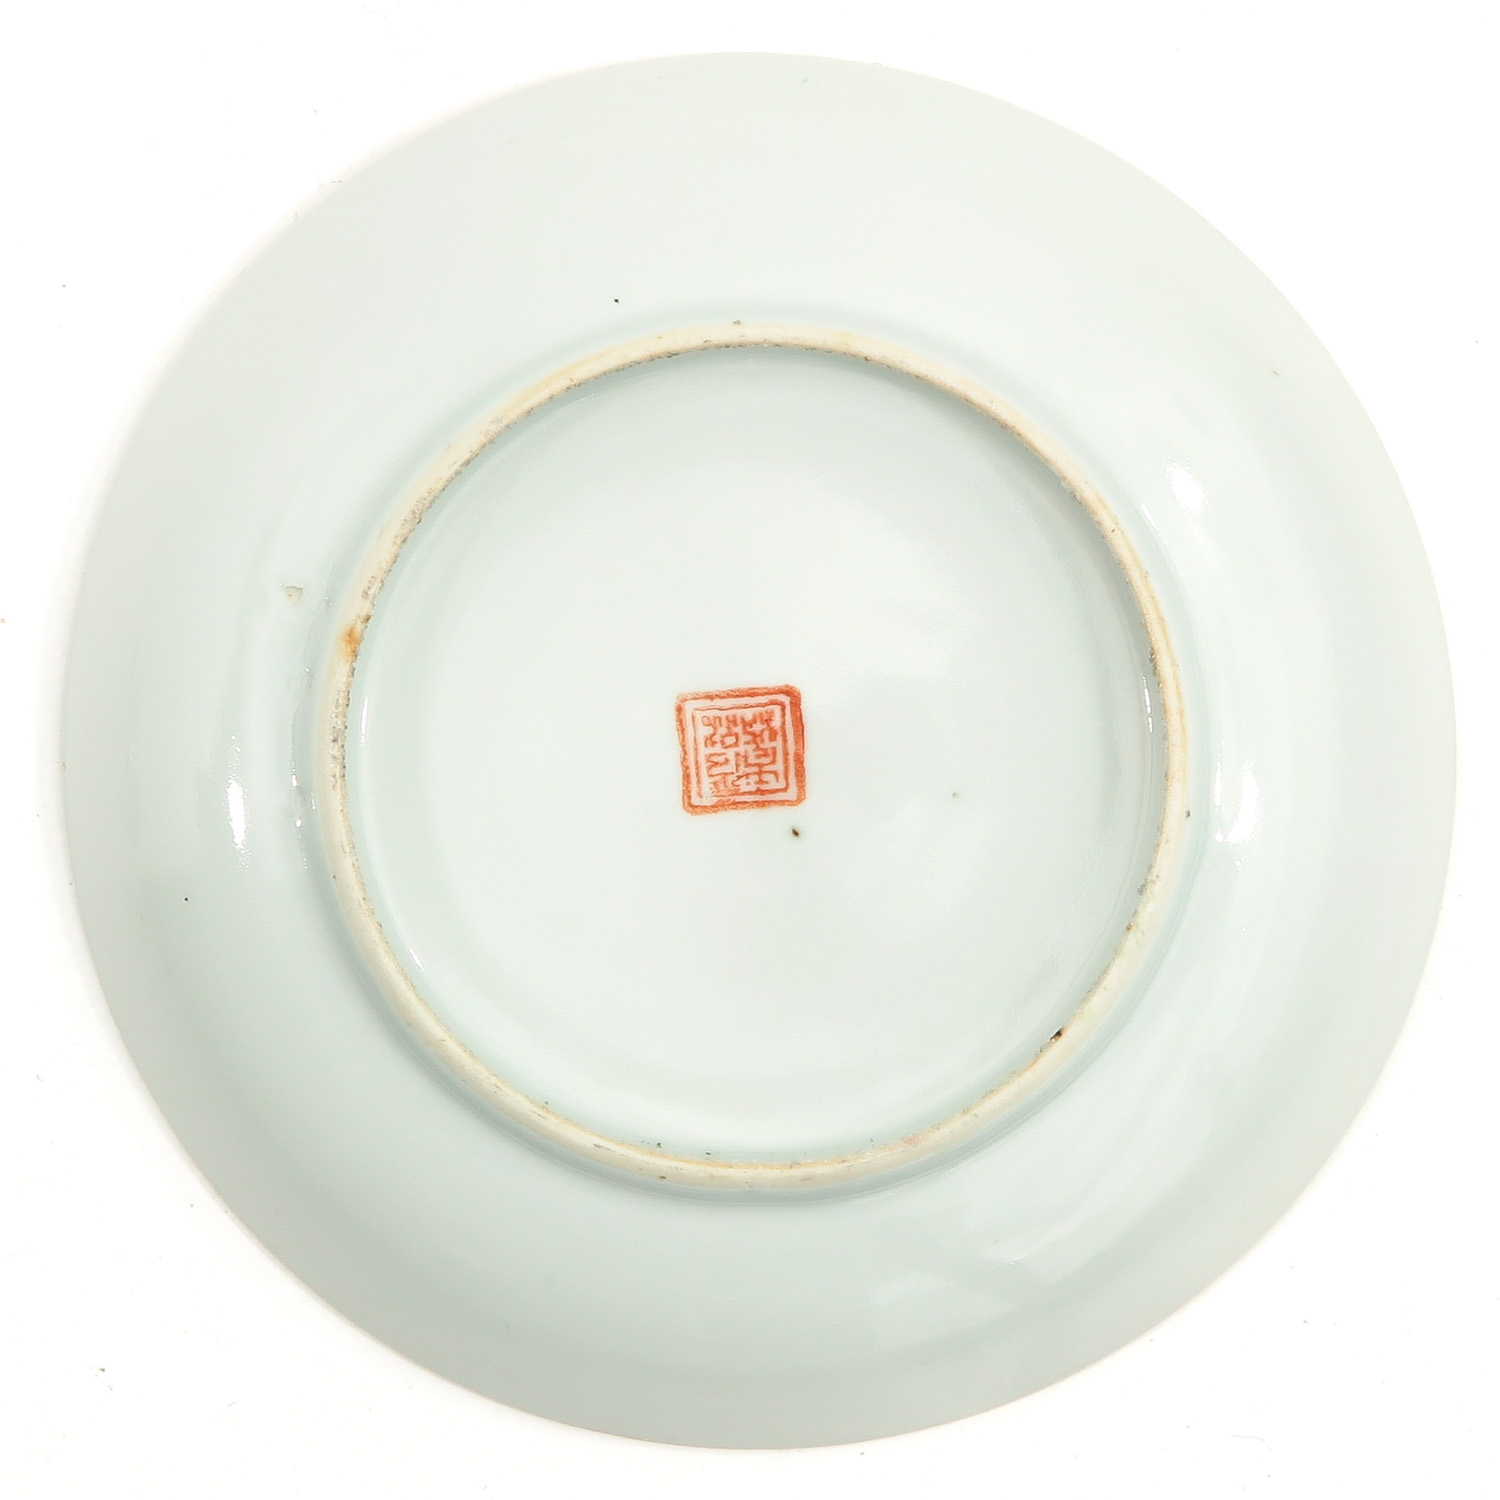 A Series of 3 Famille Rose Plates - Image 8 of 10